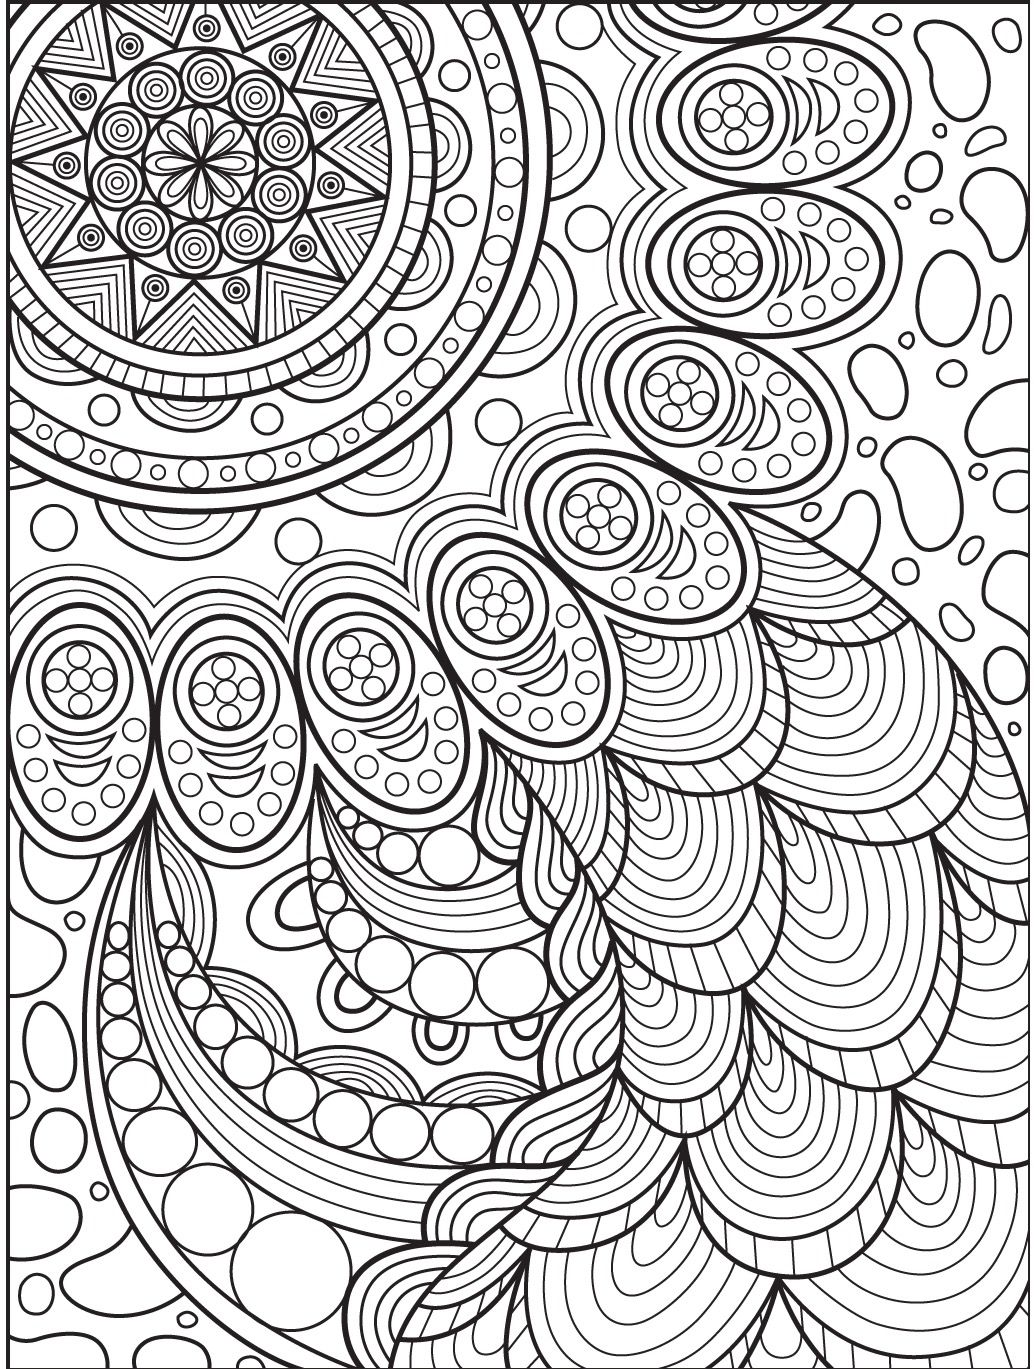 Abstract Coloring Page On Colorish Coloring Book App For Adults By Goodsofttech Abstract Coloring Pages Geometric Coloring Pages Coloring Book App